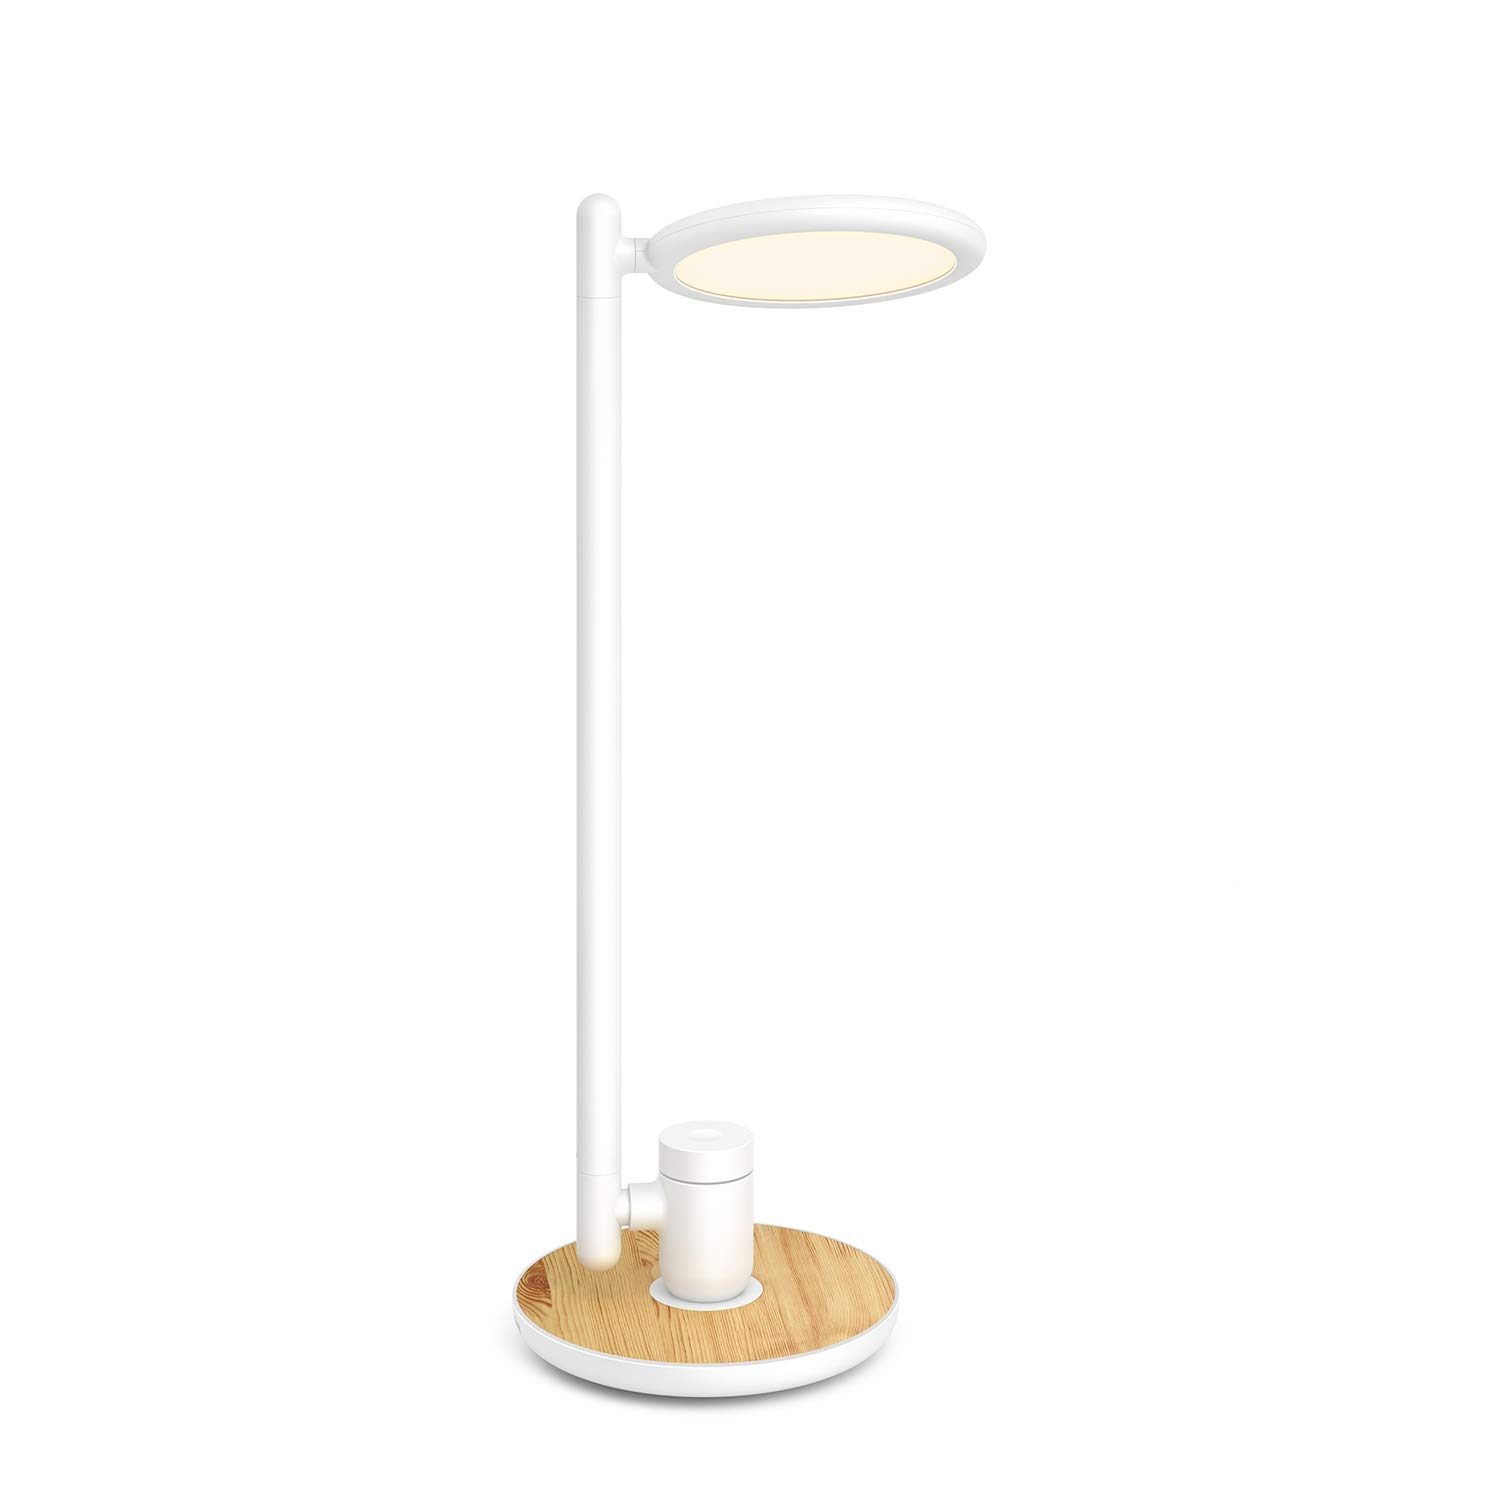 LED Desk Lamp with USB Charging Port, Gladle Eye-care Desk Lights for Bedroom College Dorm Living Room Office, Dimmable Reading Lamp with Wood Grain, Bright Study Lamp for Kids, Touch Control, Memory by Gladle